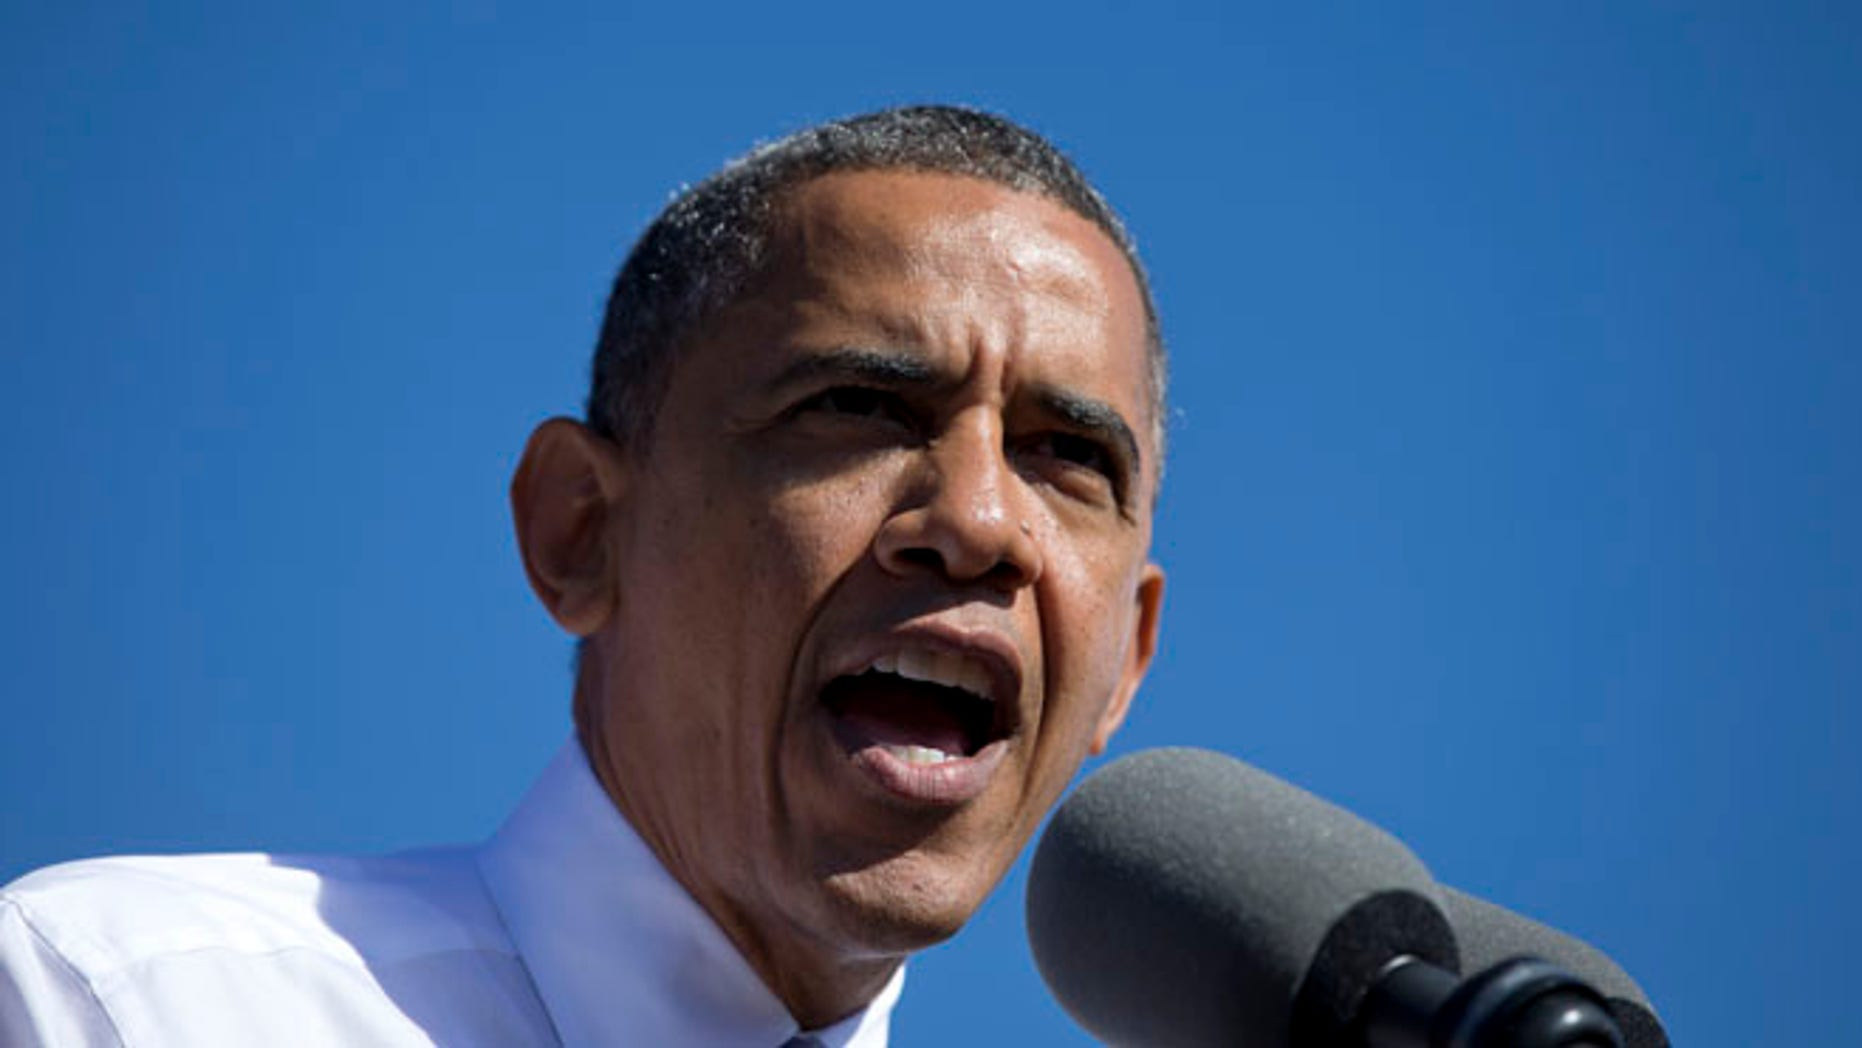 President Barack Obama speaks at a campaign event at Veteran's Memorial Park, Thursday, Oct. 18, 2012, in Manchester, N.H. (AP Photo/Carolyn Kaster)